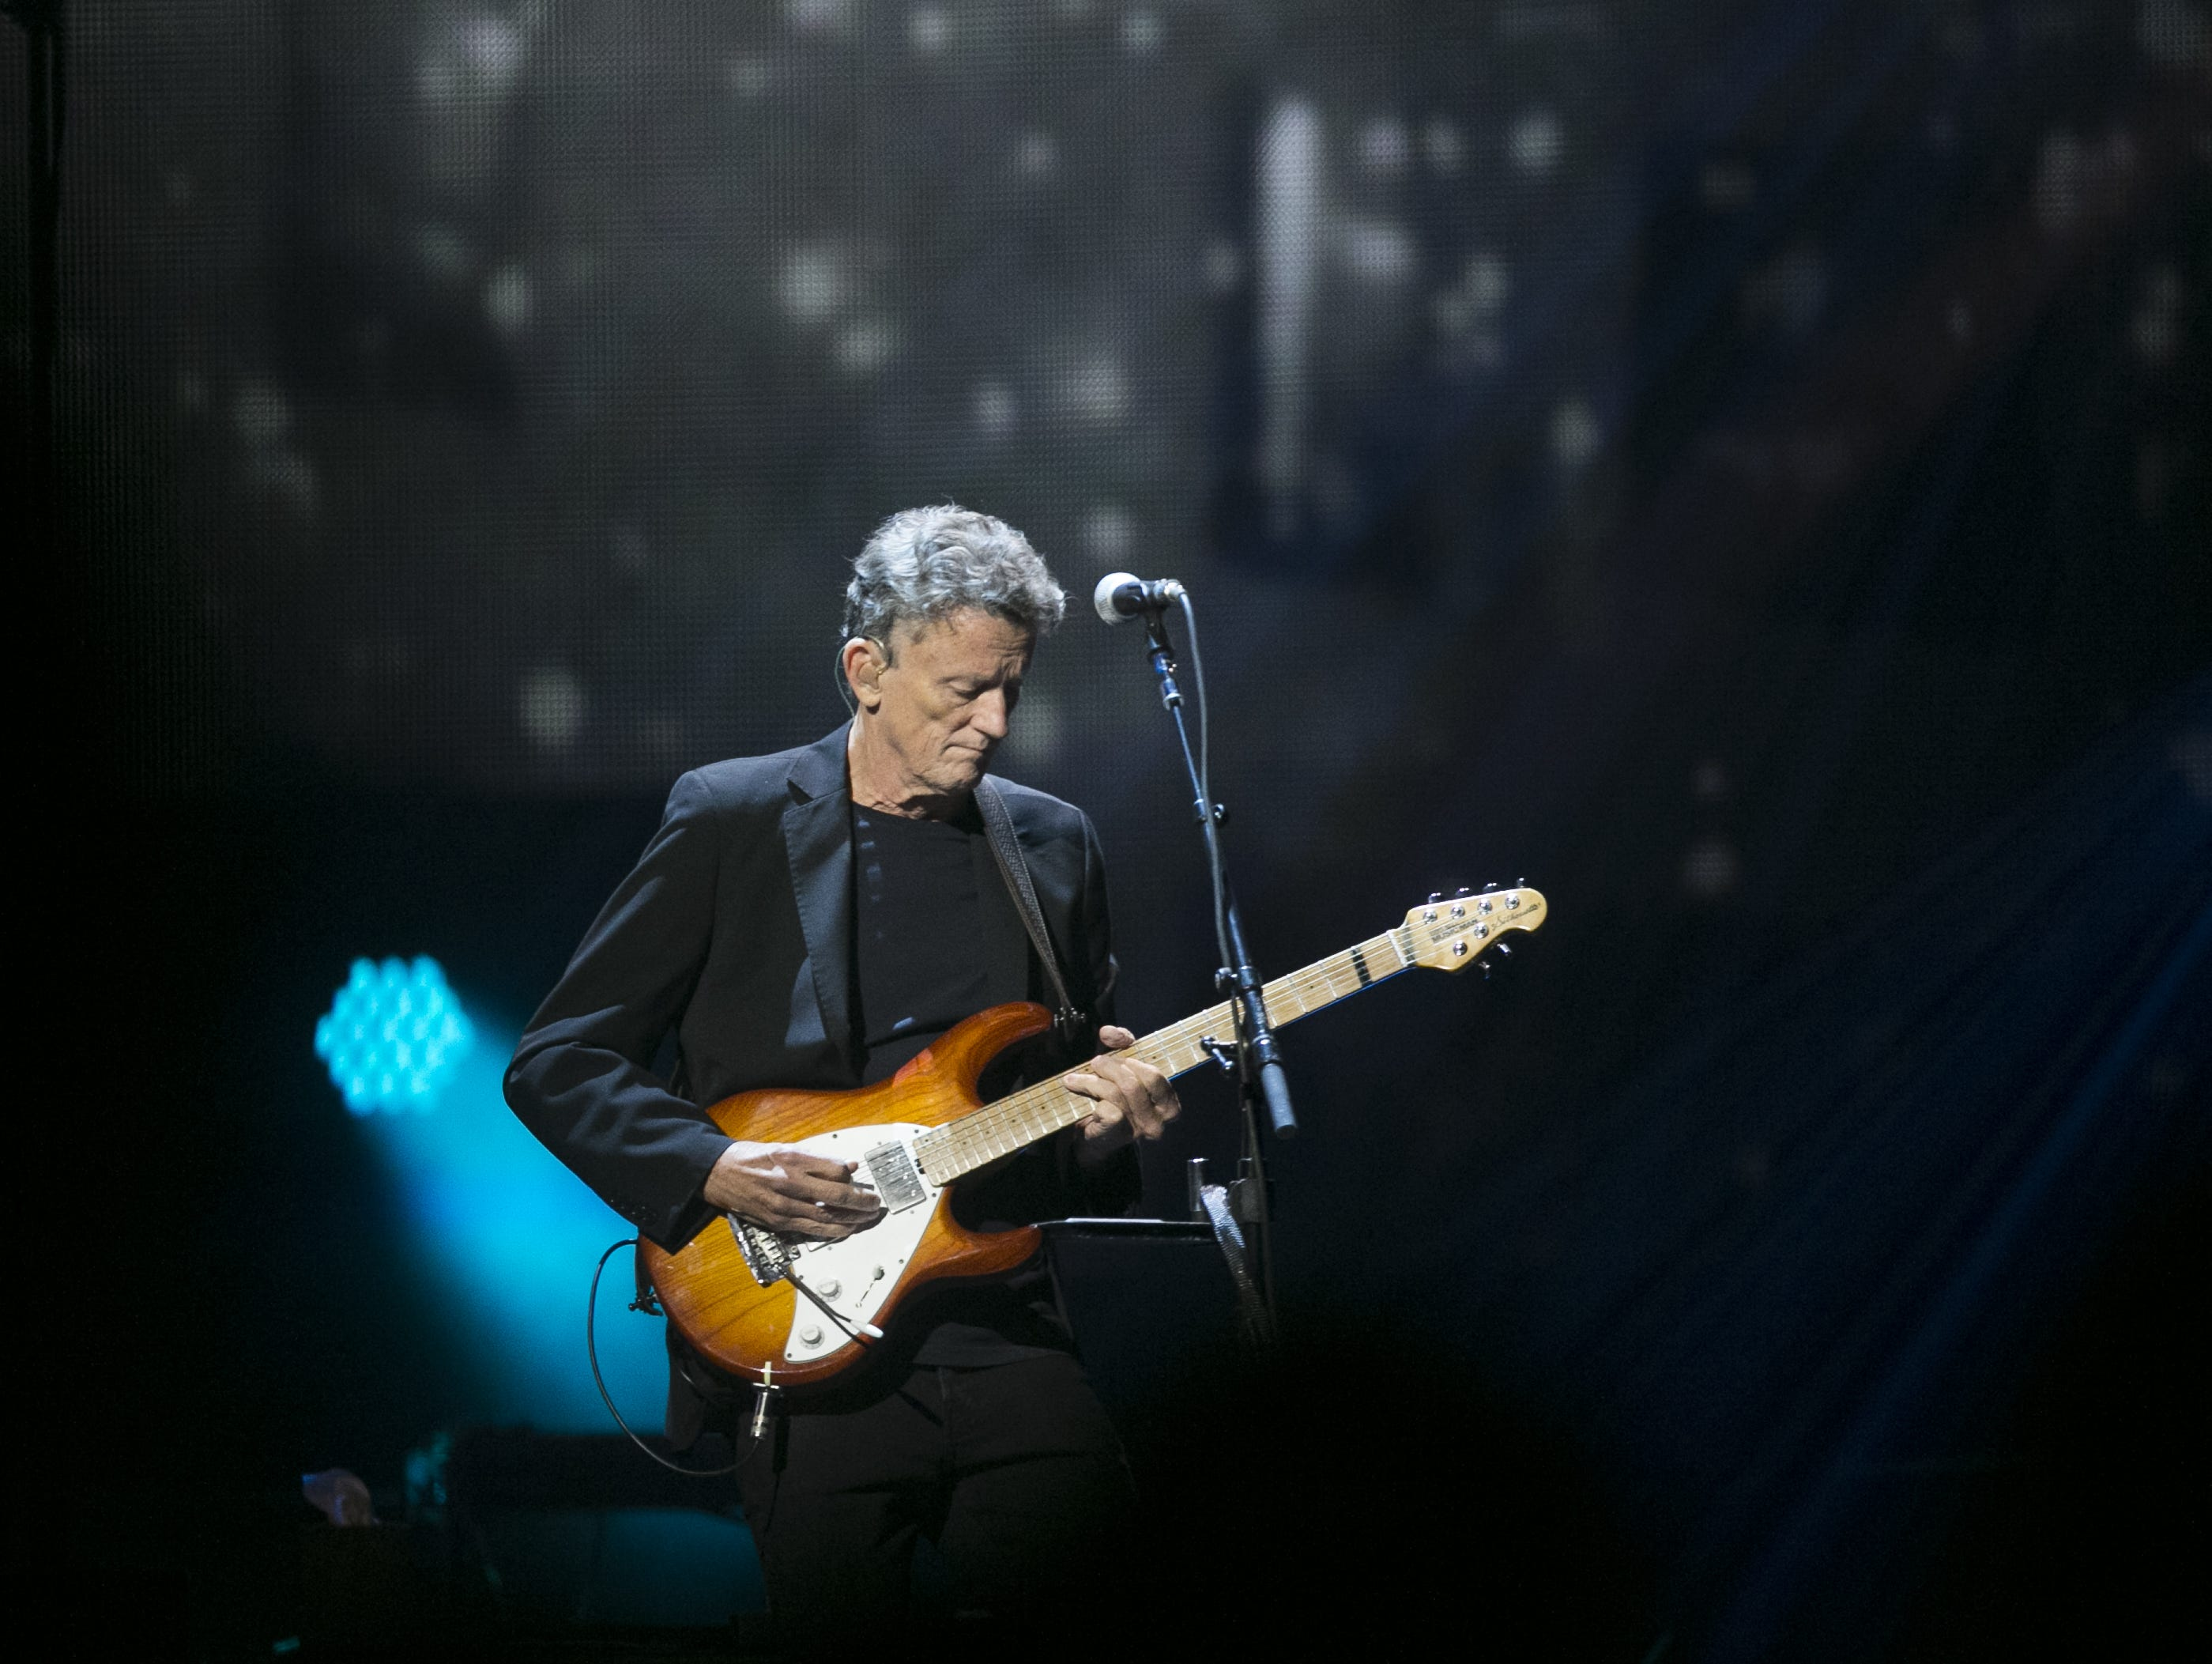 Steuart Smith performs with the Eagles perform at Talking Stick Resort Arena in Phoenix on Sat. Sep. 8, 2018.